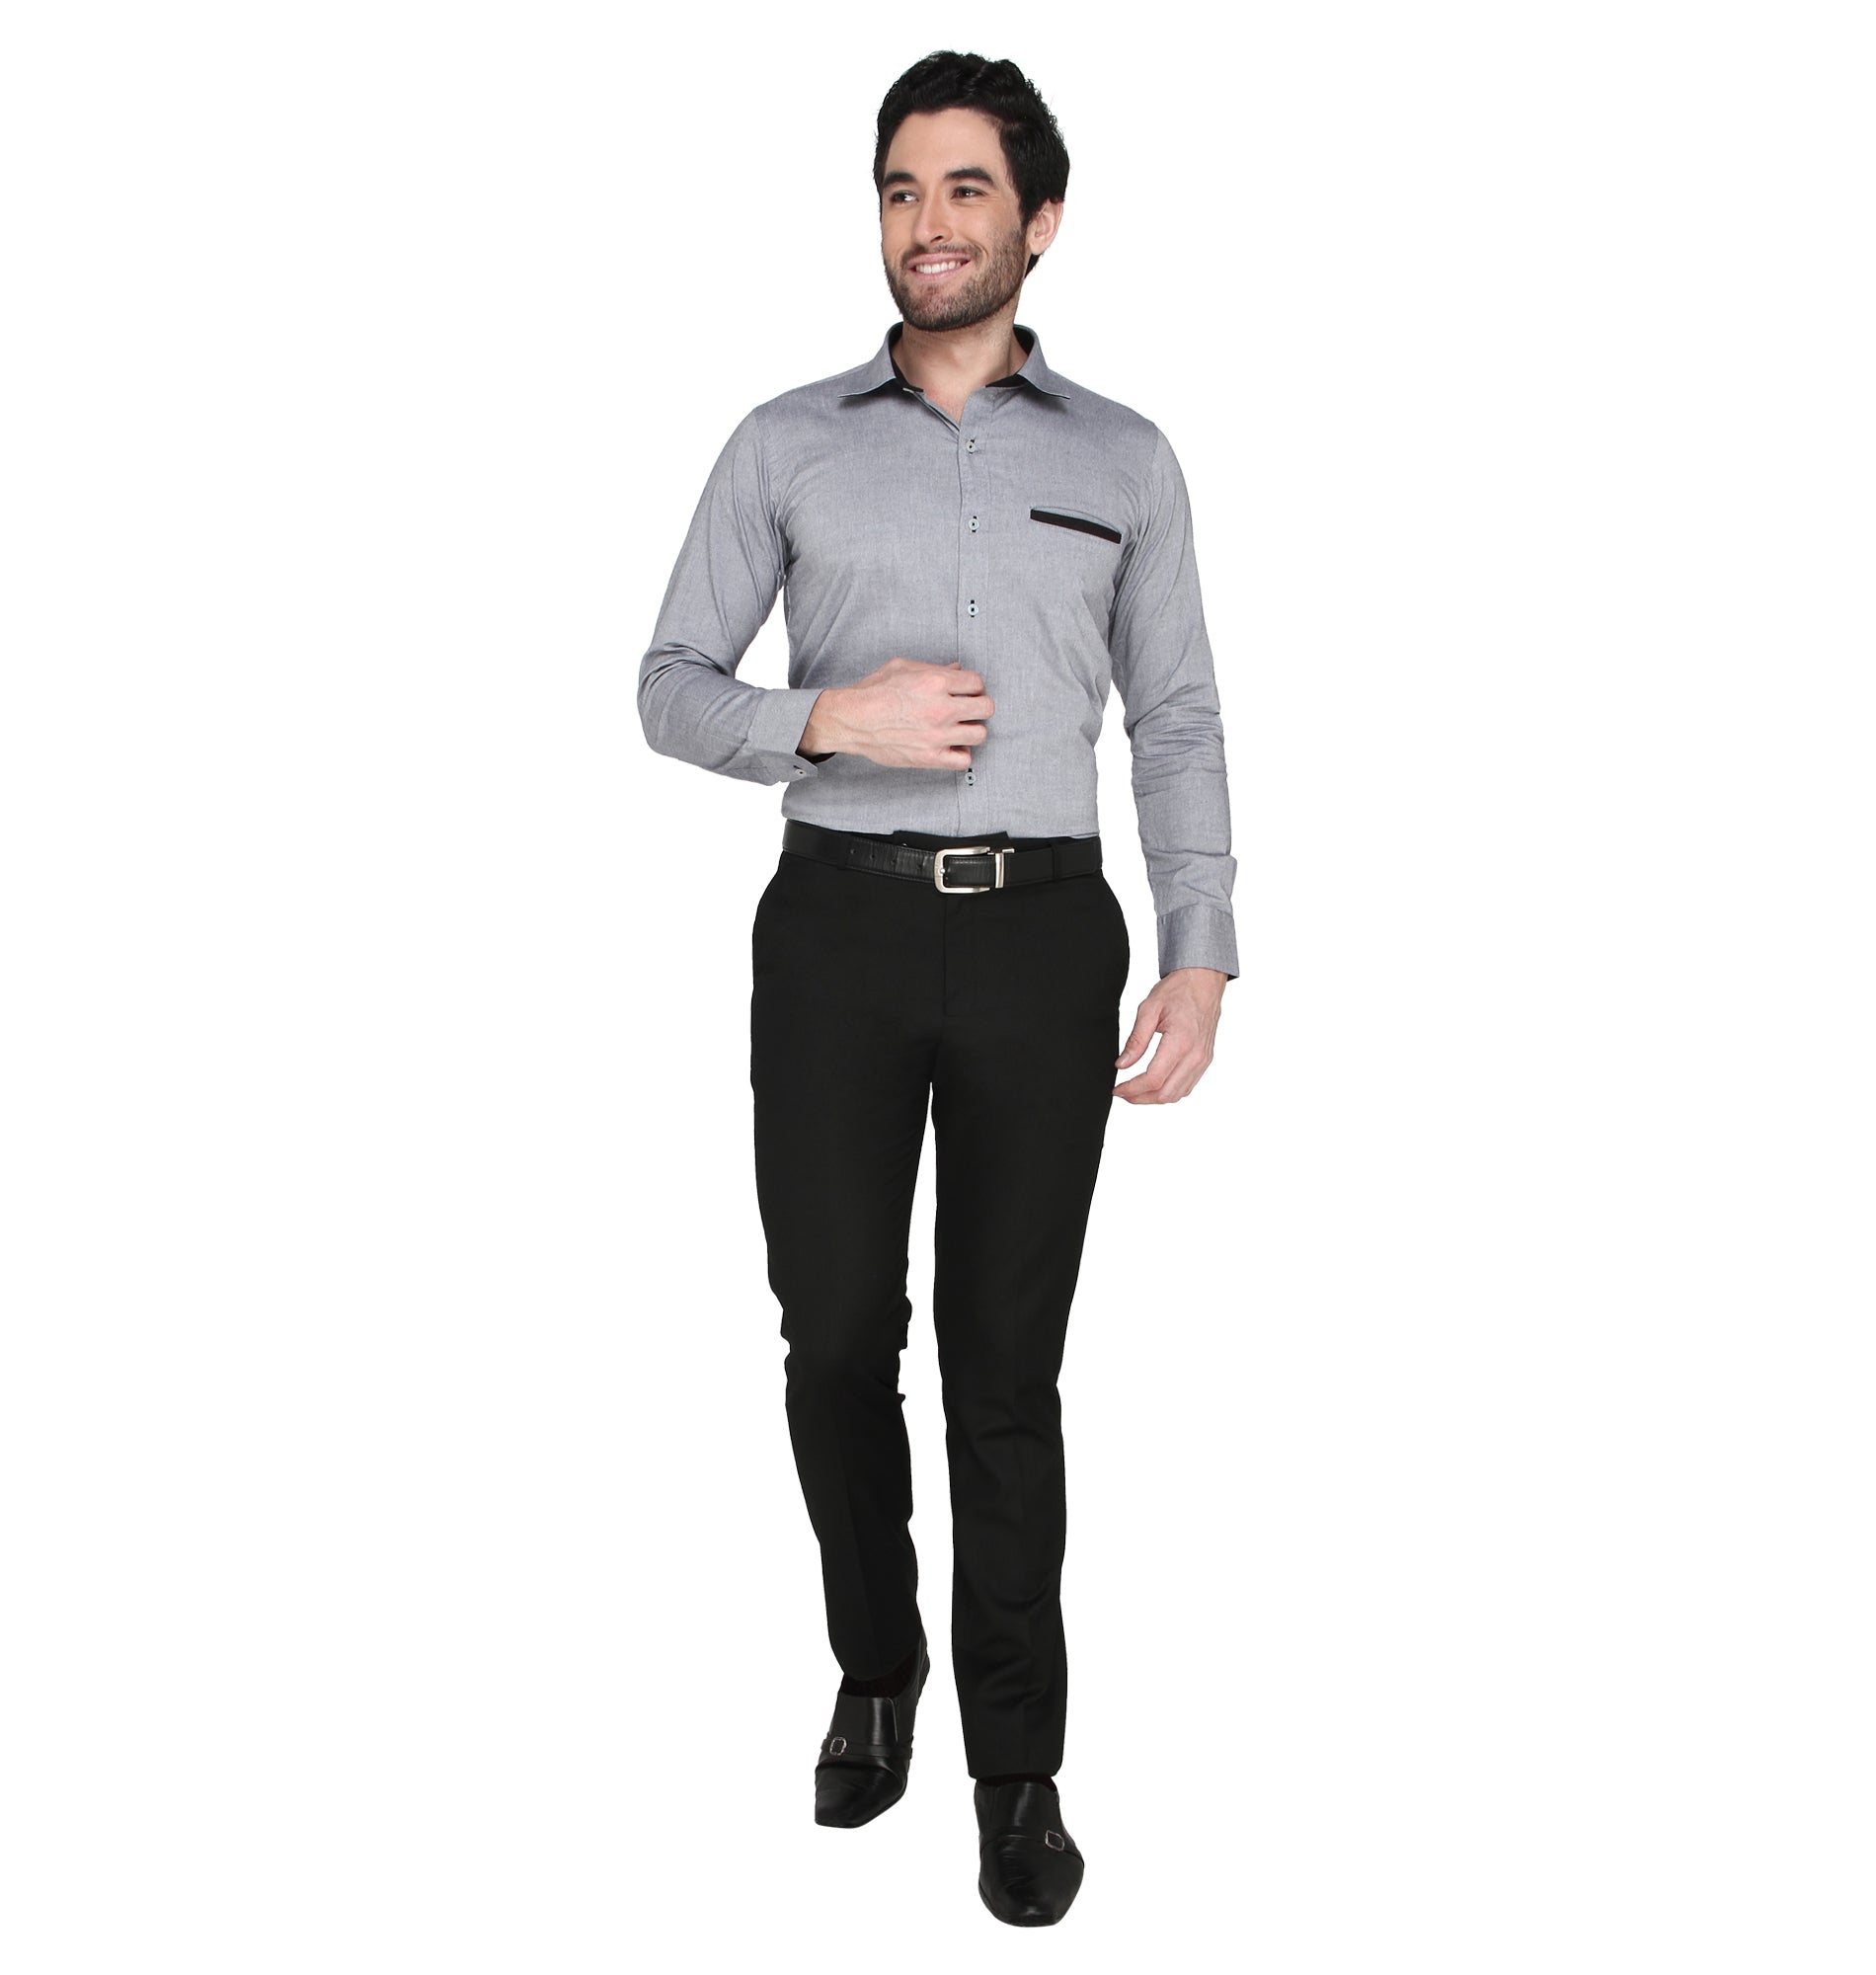 ZIDO cotton Solid Shirt for Men's CHCN1378